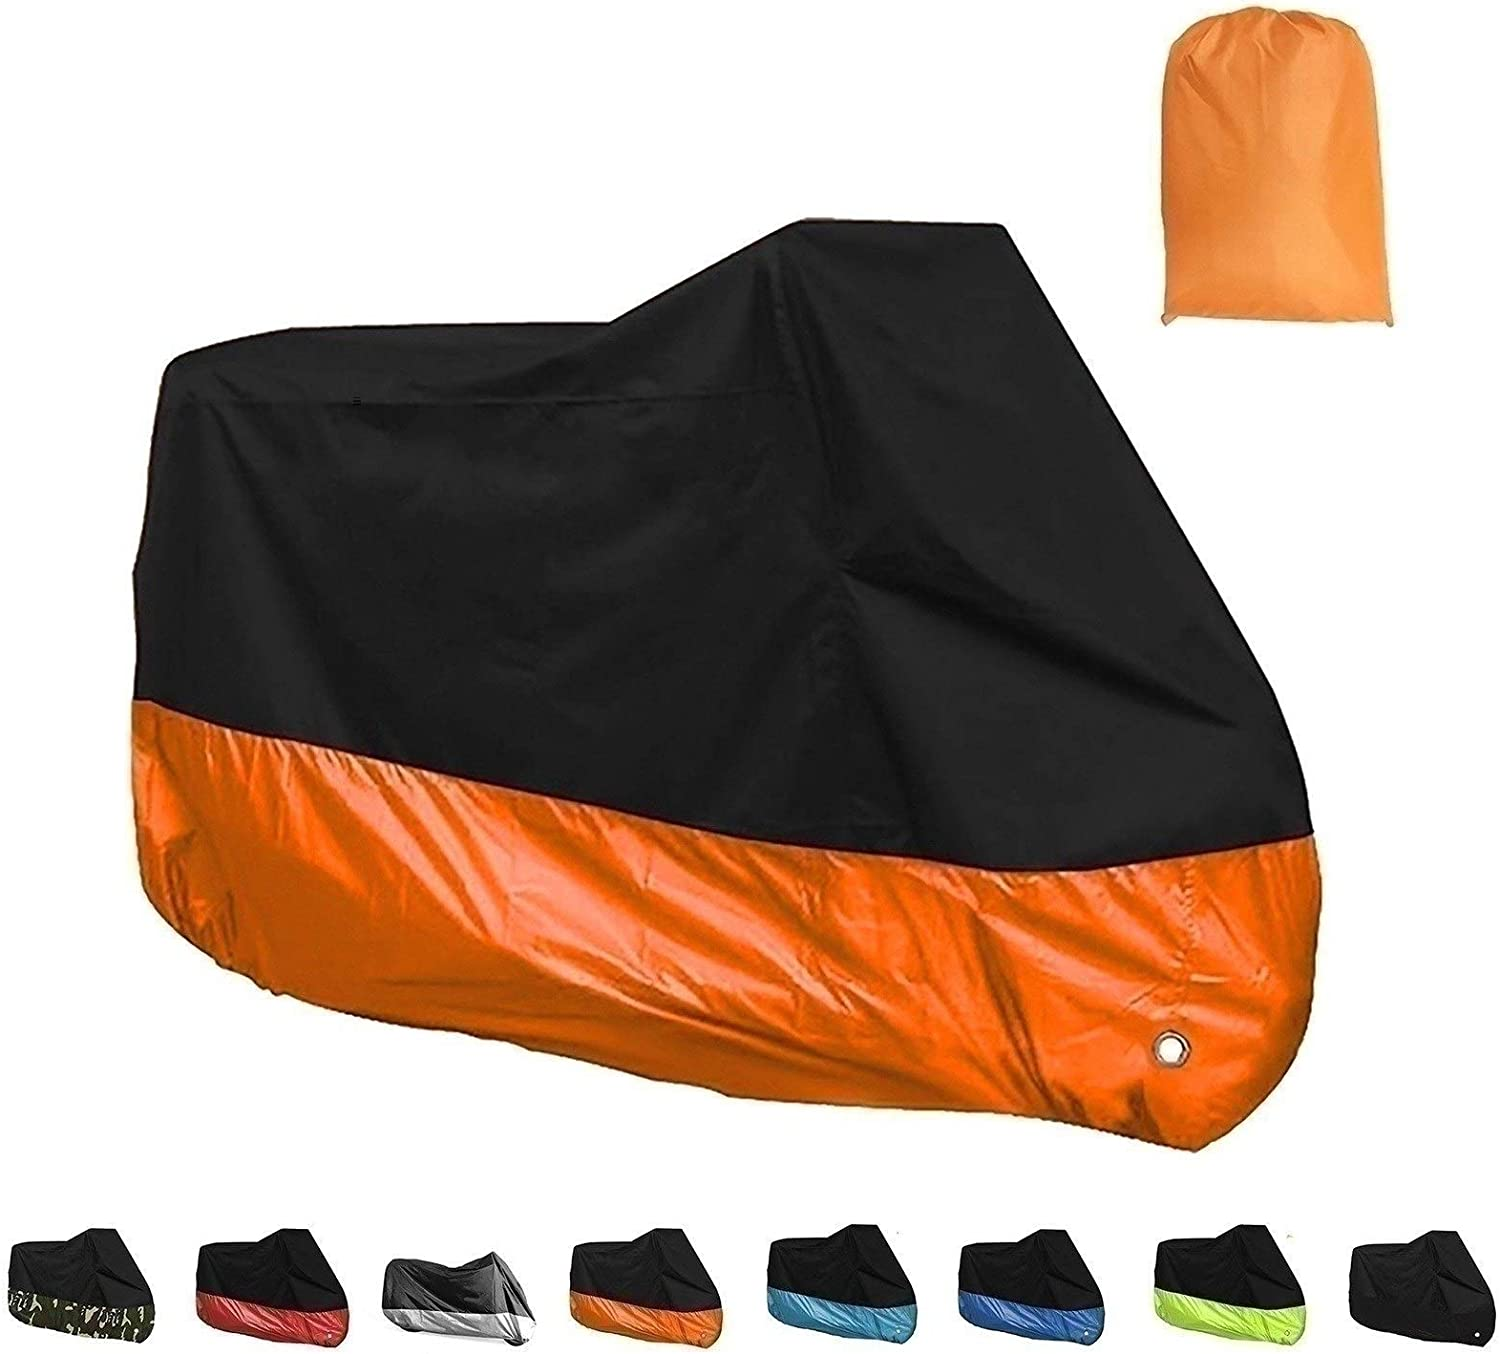 HWHCZ Motorcycle Covers Long Beach Mall Compatible Benelli with Cover New arrival